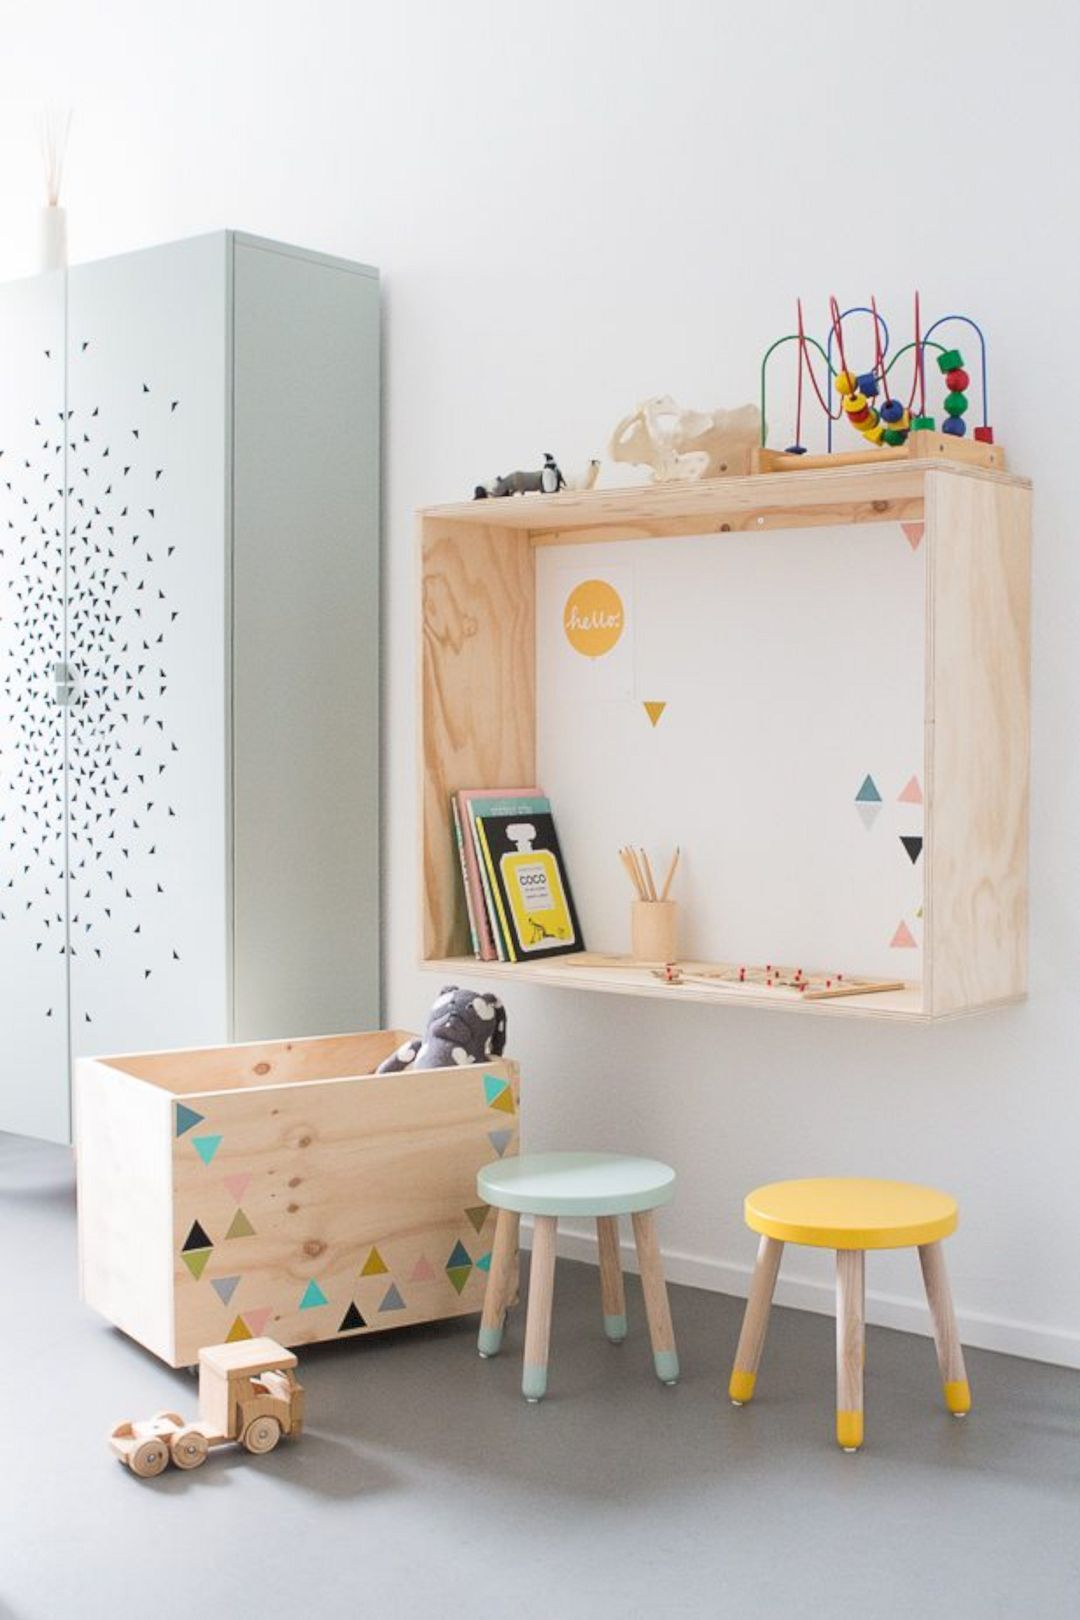 Best Charming Kid's Room Decor Ideas   Kids rooms, Room decor and Kids on hide television design ideas, bedroom designs, western bedroom ideas, bedroom wall art, shelving ideas, bedroom shelf for candles, storage for small bedrooms ideas, beautiful bedroom ideas,